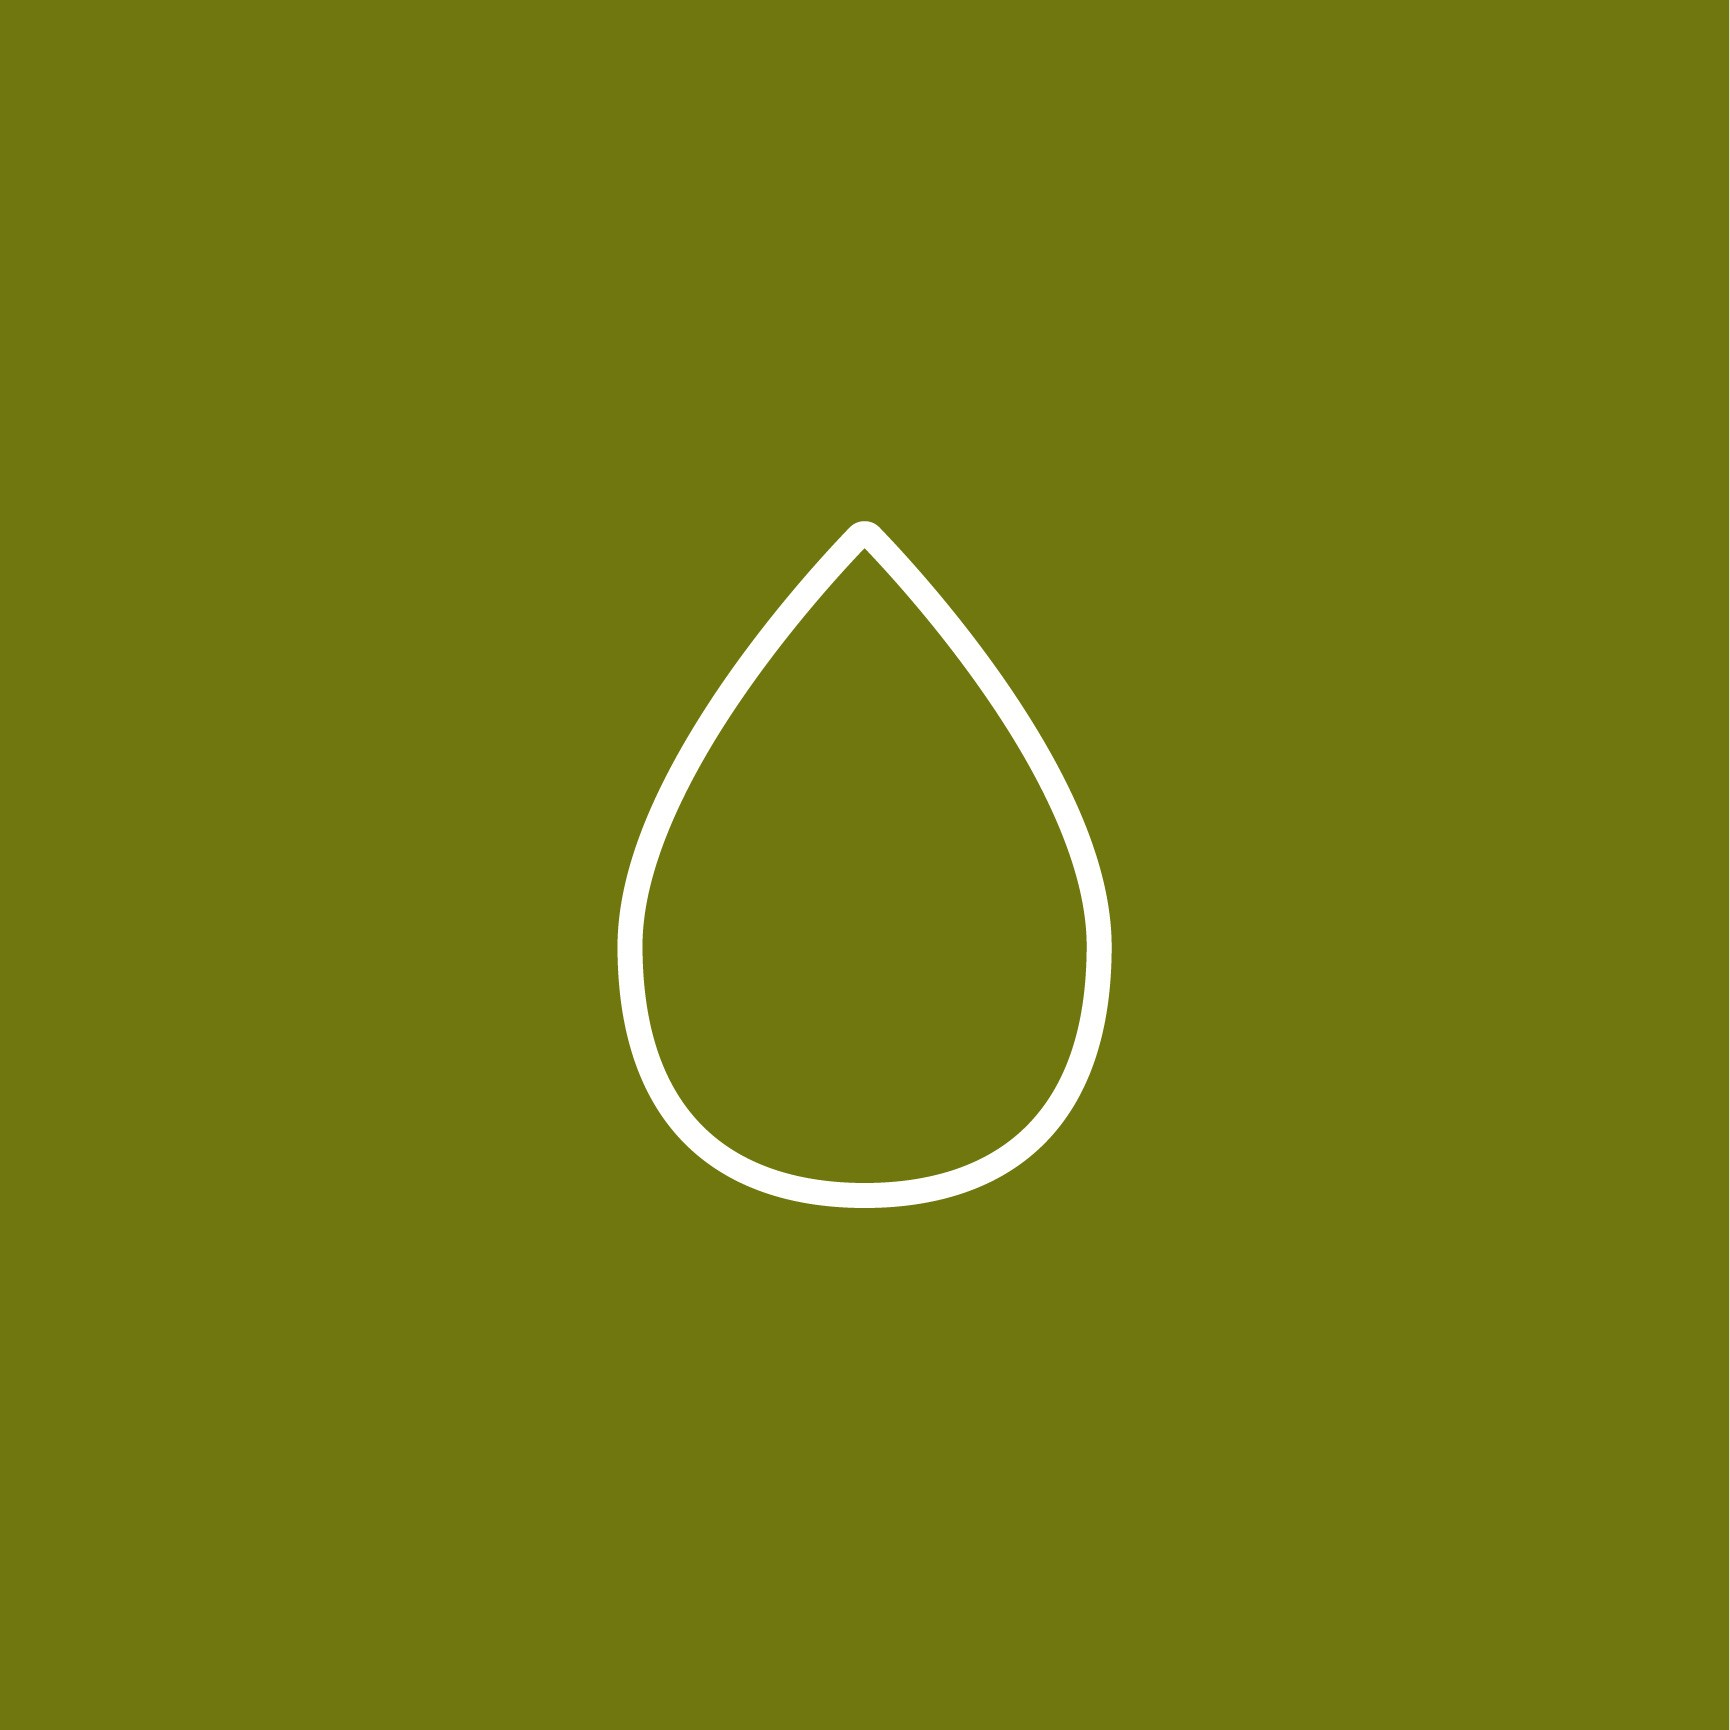 Icon for reducing Potable Water Consumption